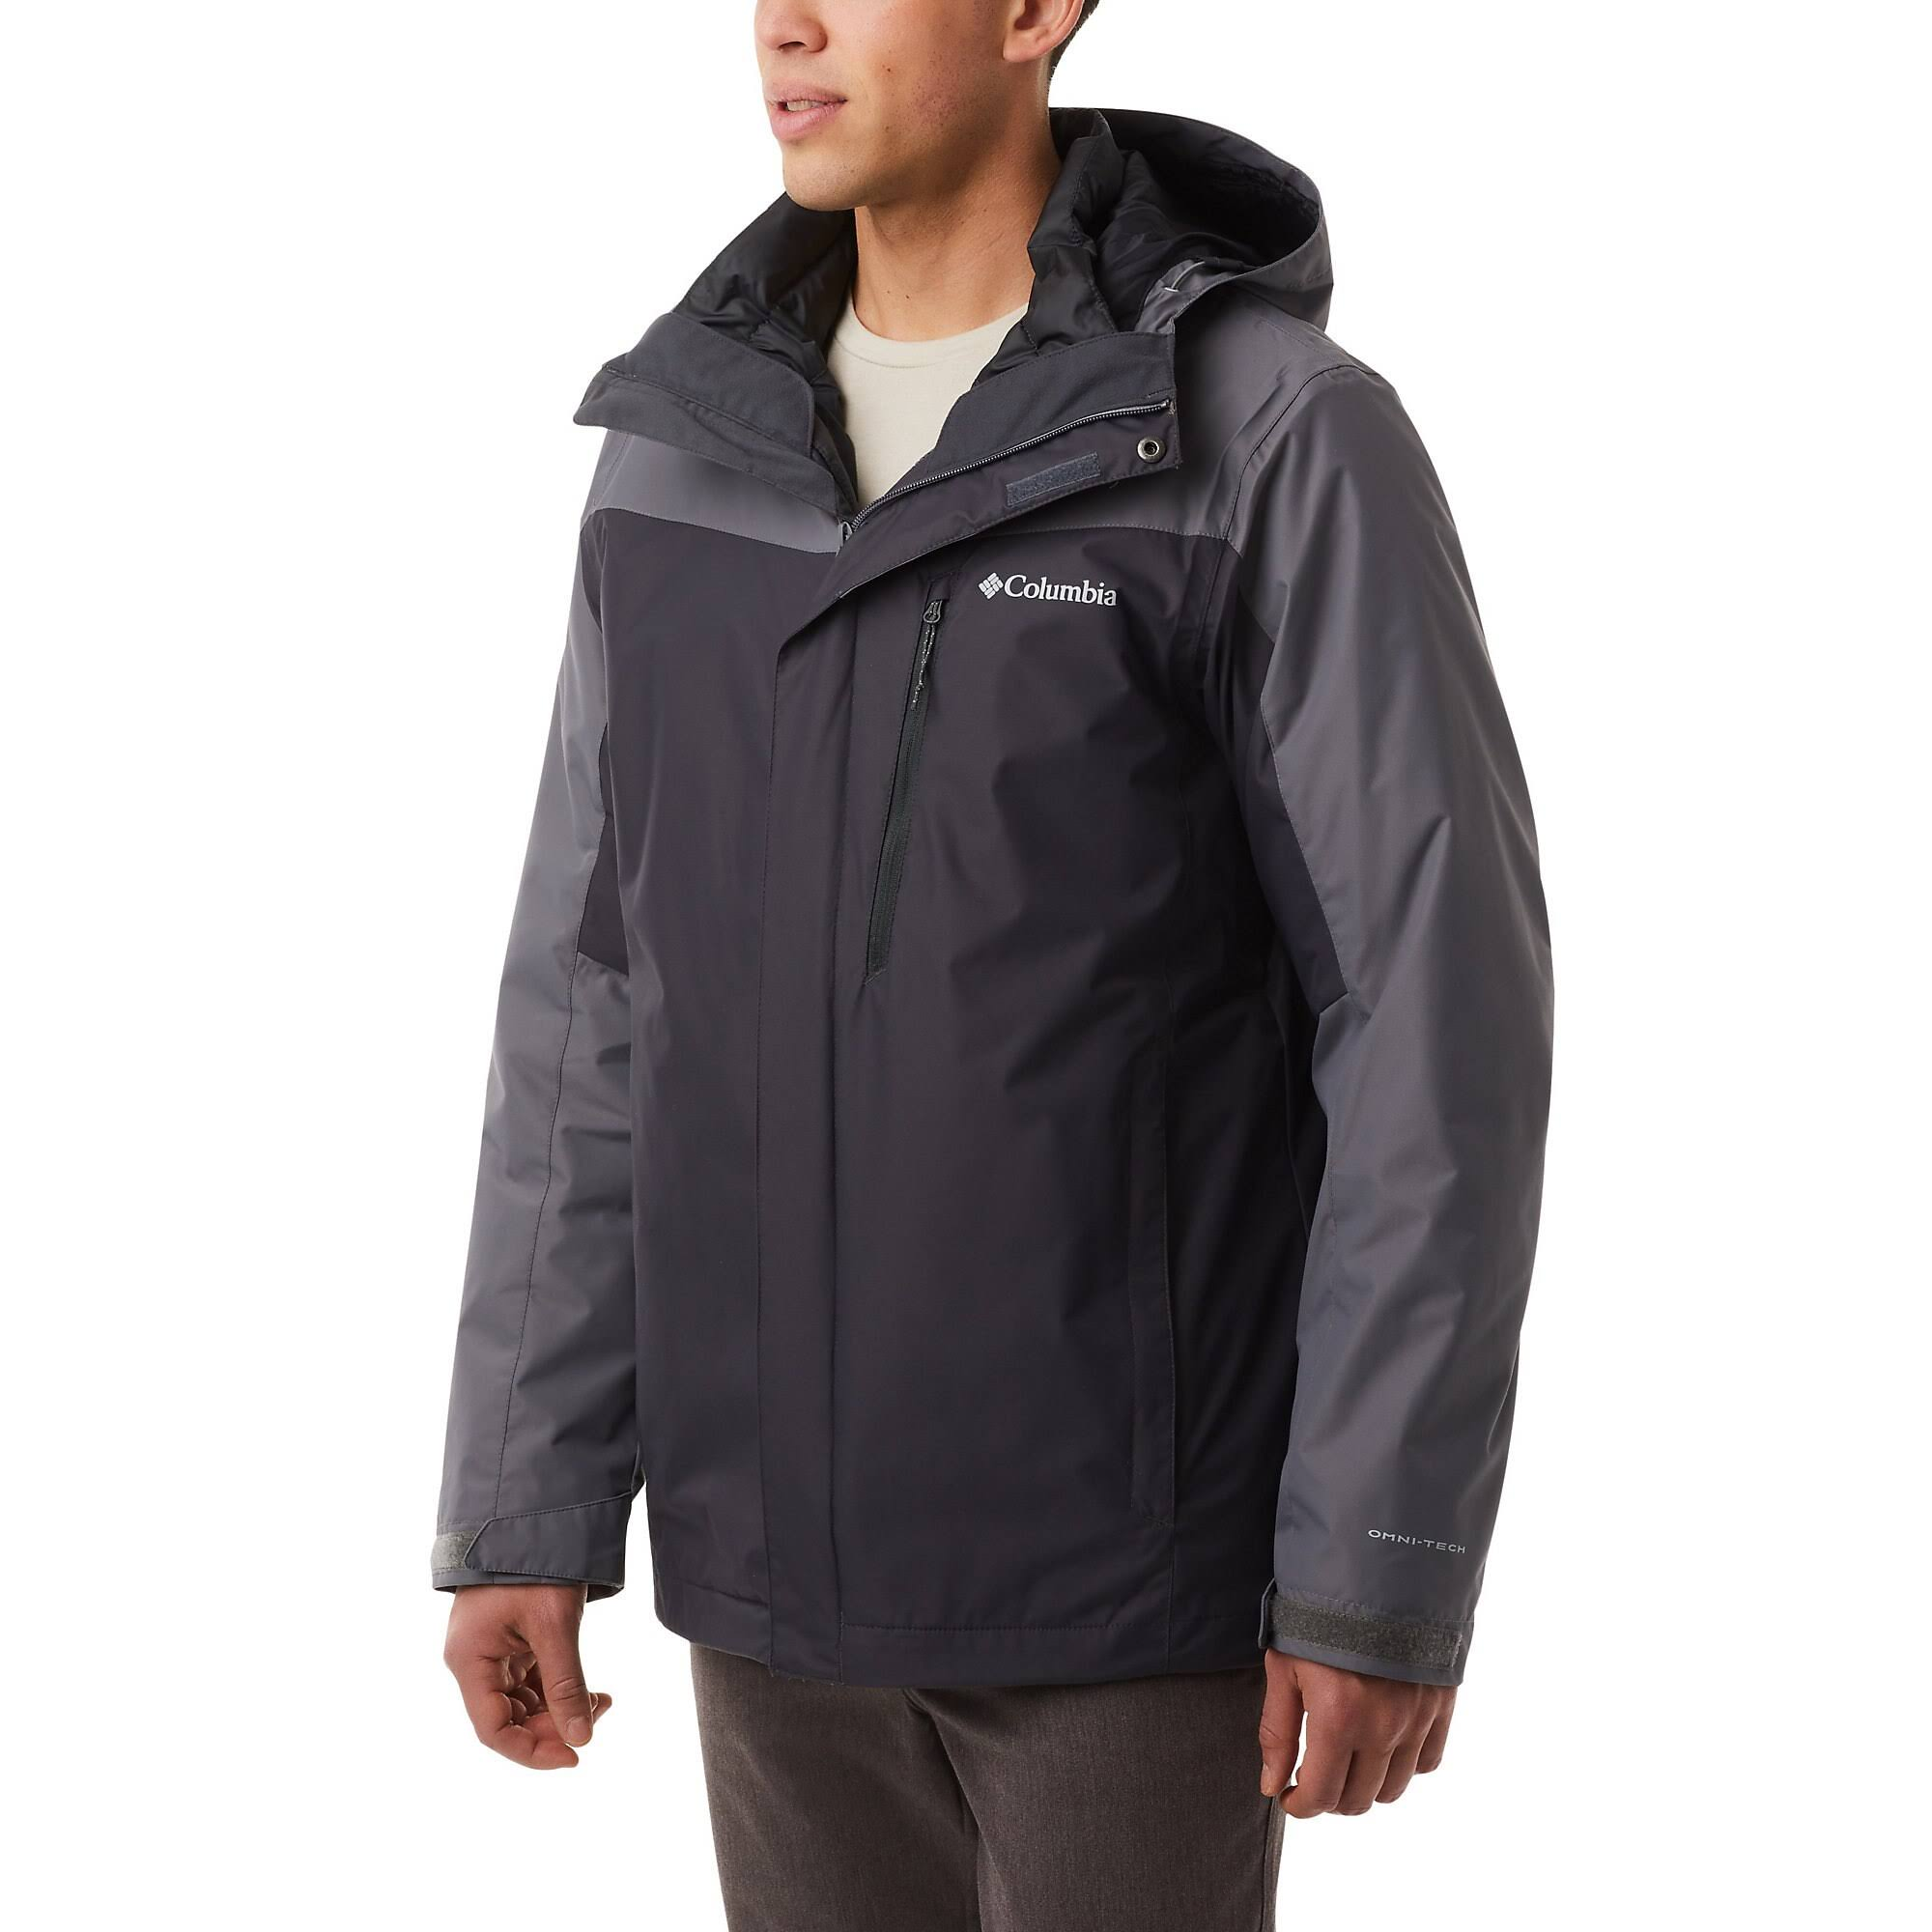 Columbia Men's Whirlibird IV Interchange Jacket - 3XT - Shark/City Grey